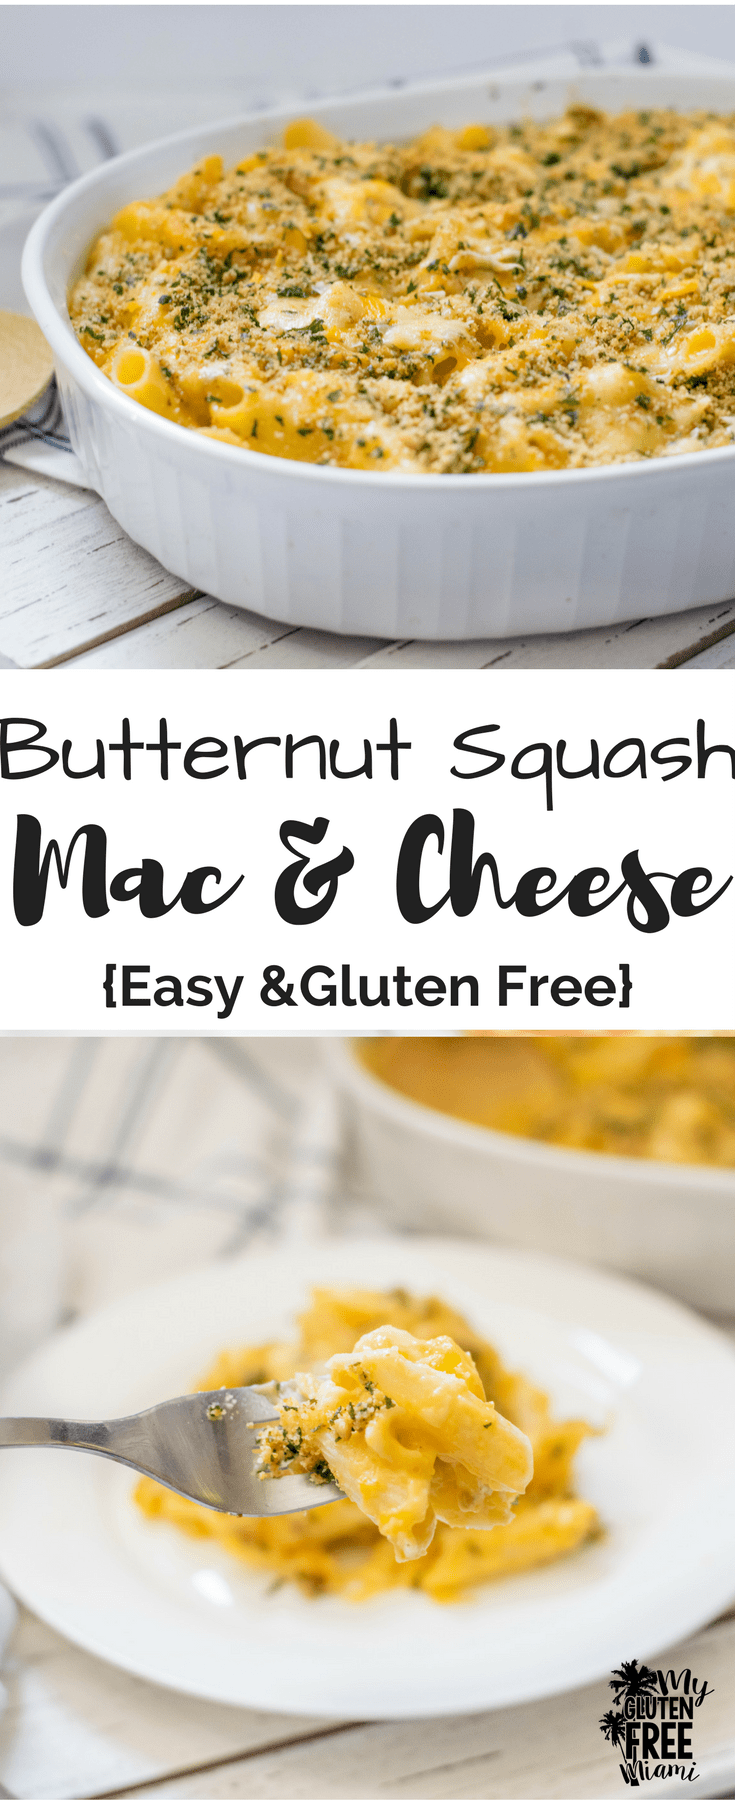 Gluten Free Butternut Squash Macaroni and Cheese has all the deep, creamy flavor of macaroni and cheese with hidden veggies!The perfect fall comfort food. Baked Gluten Free Macaroni and Cheese ready in under 30 minutes.